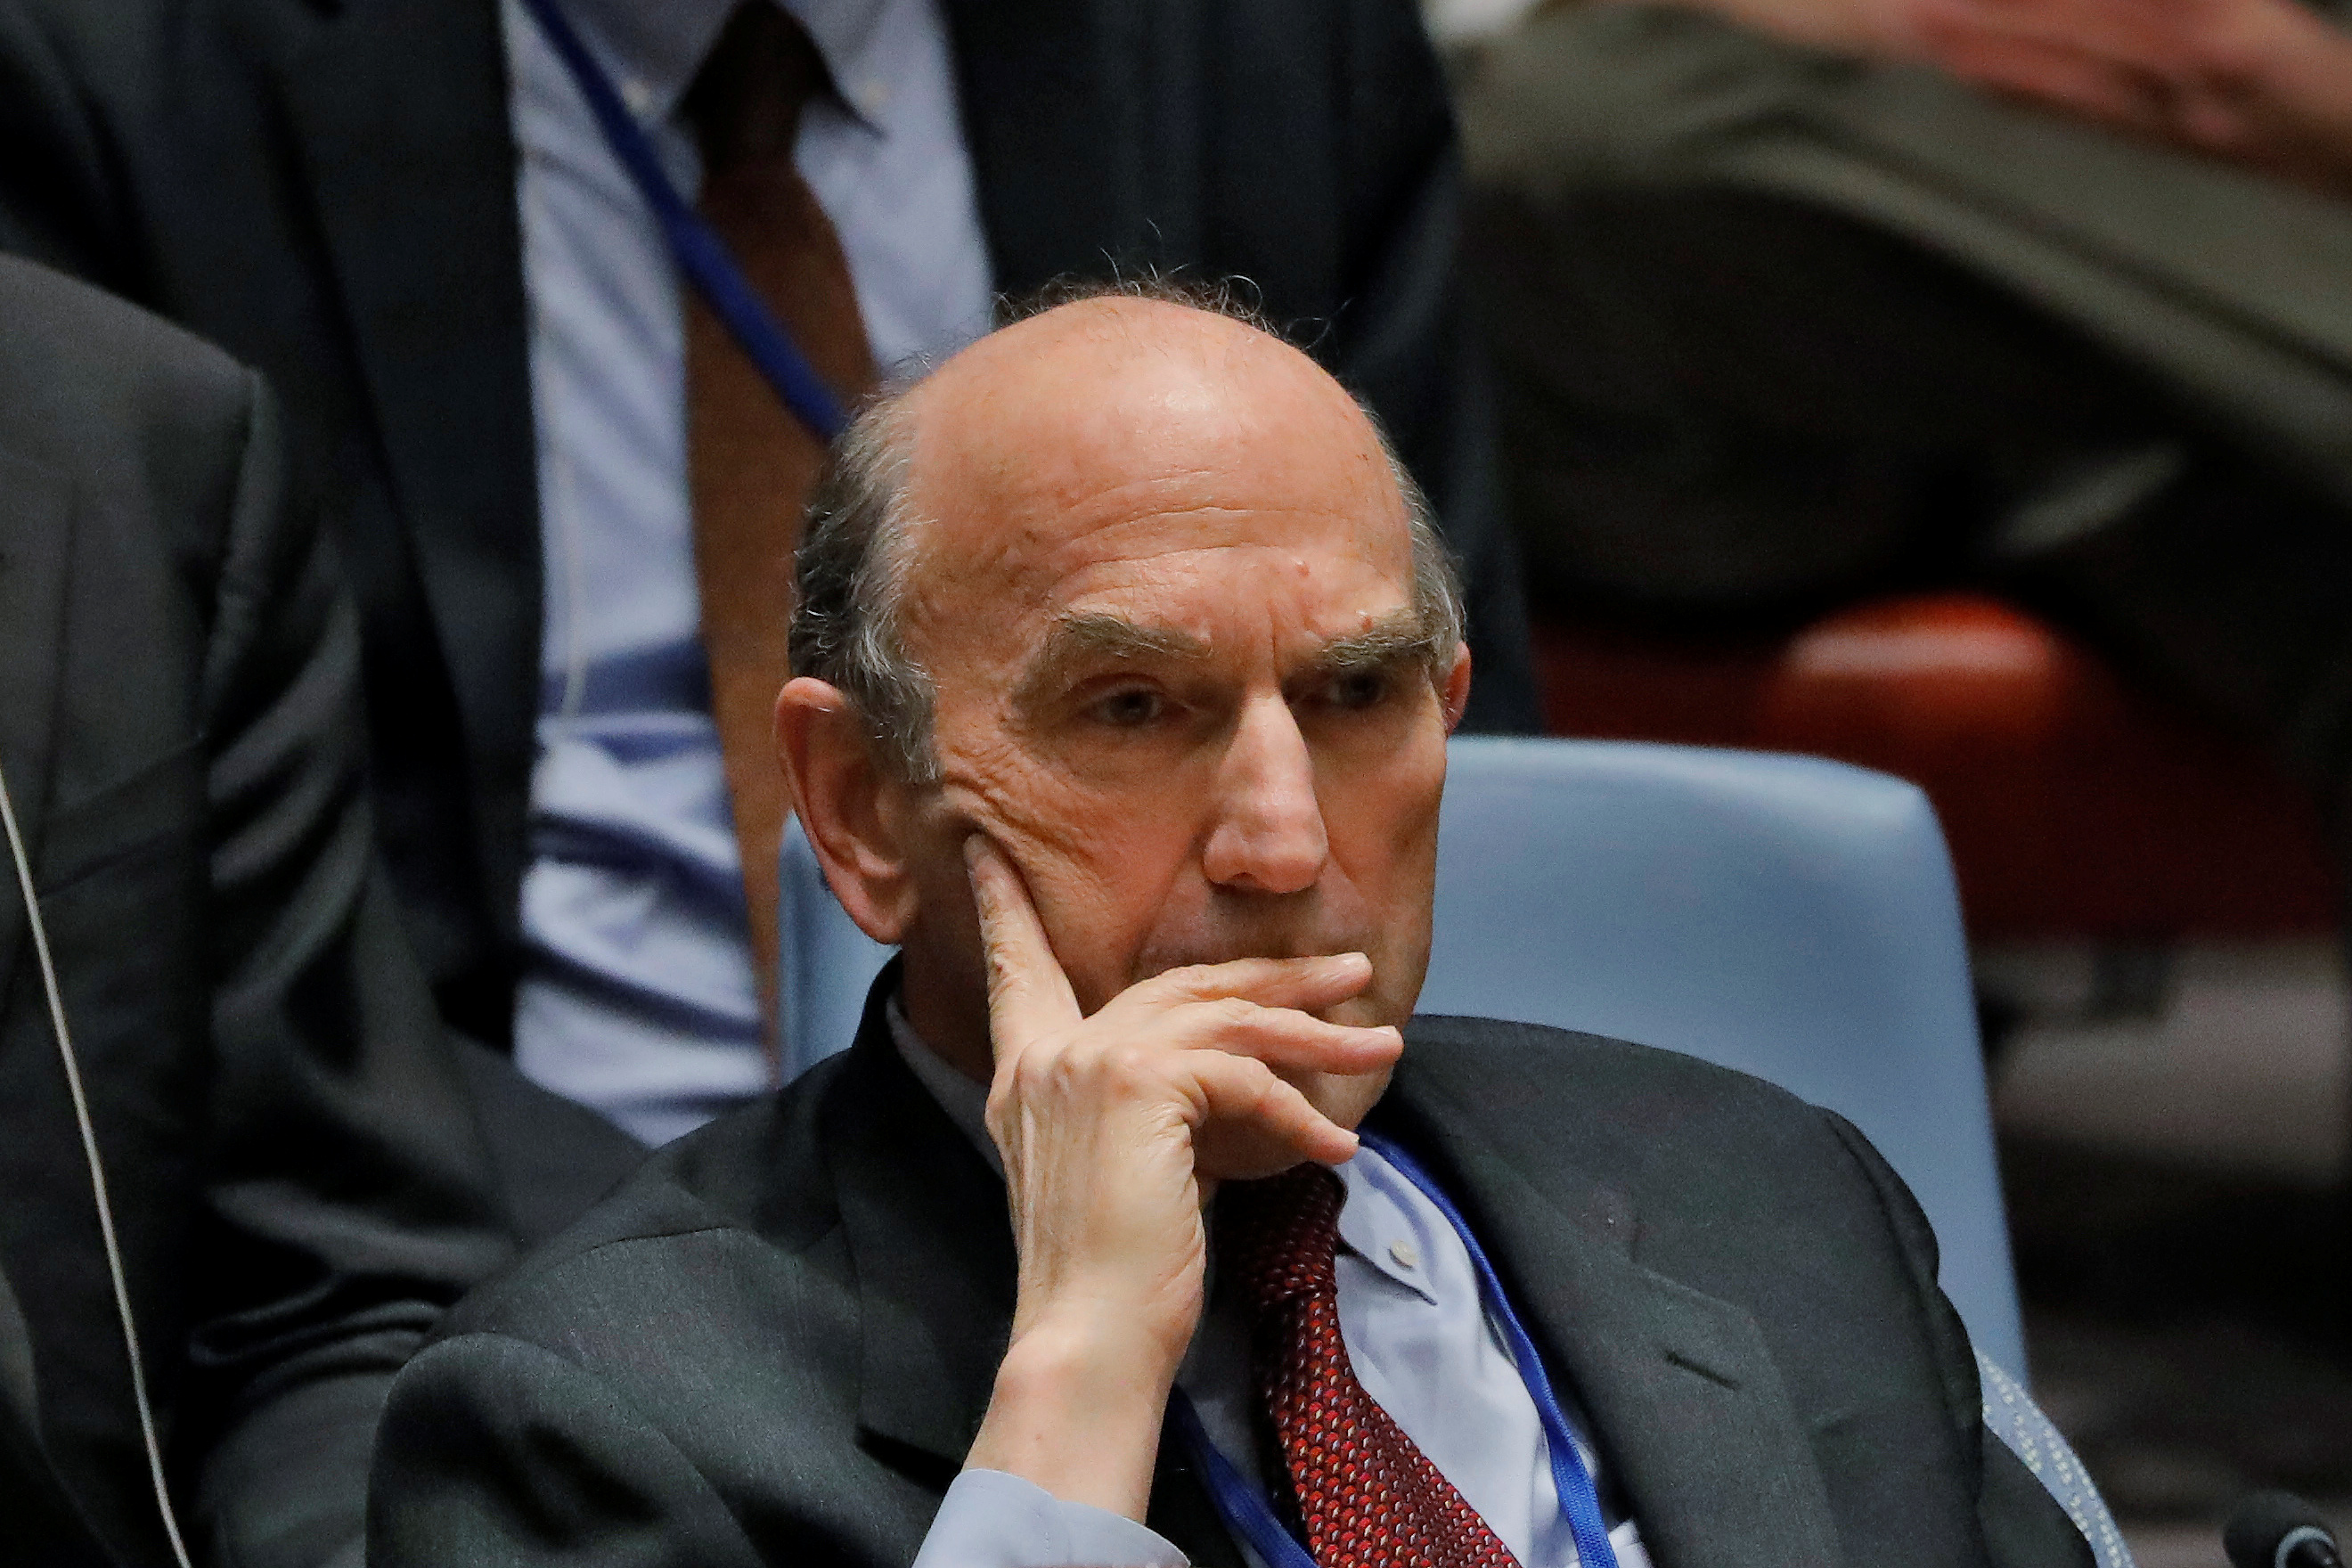 U.S. diplomat Elliott Abrams listens during a meeting of the U.N. Security Council called to discuss the Venezuelan situation at U.N. headquarters in New York, Feb. 28, 2019.